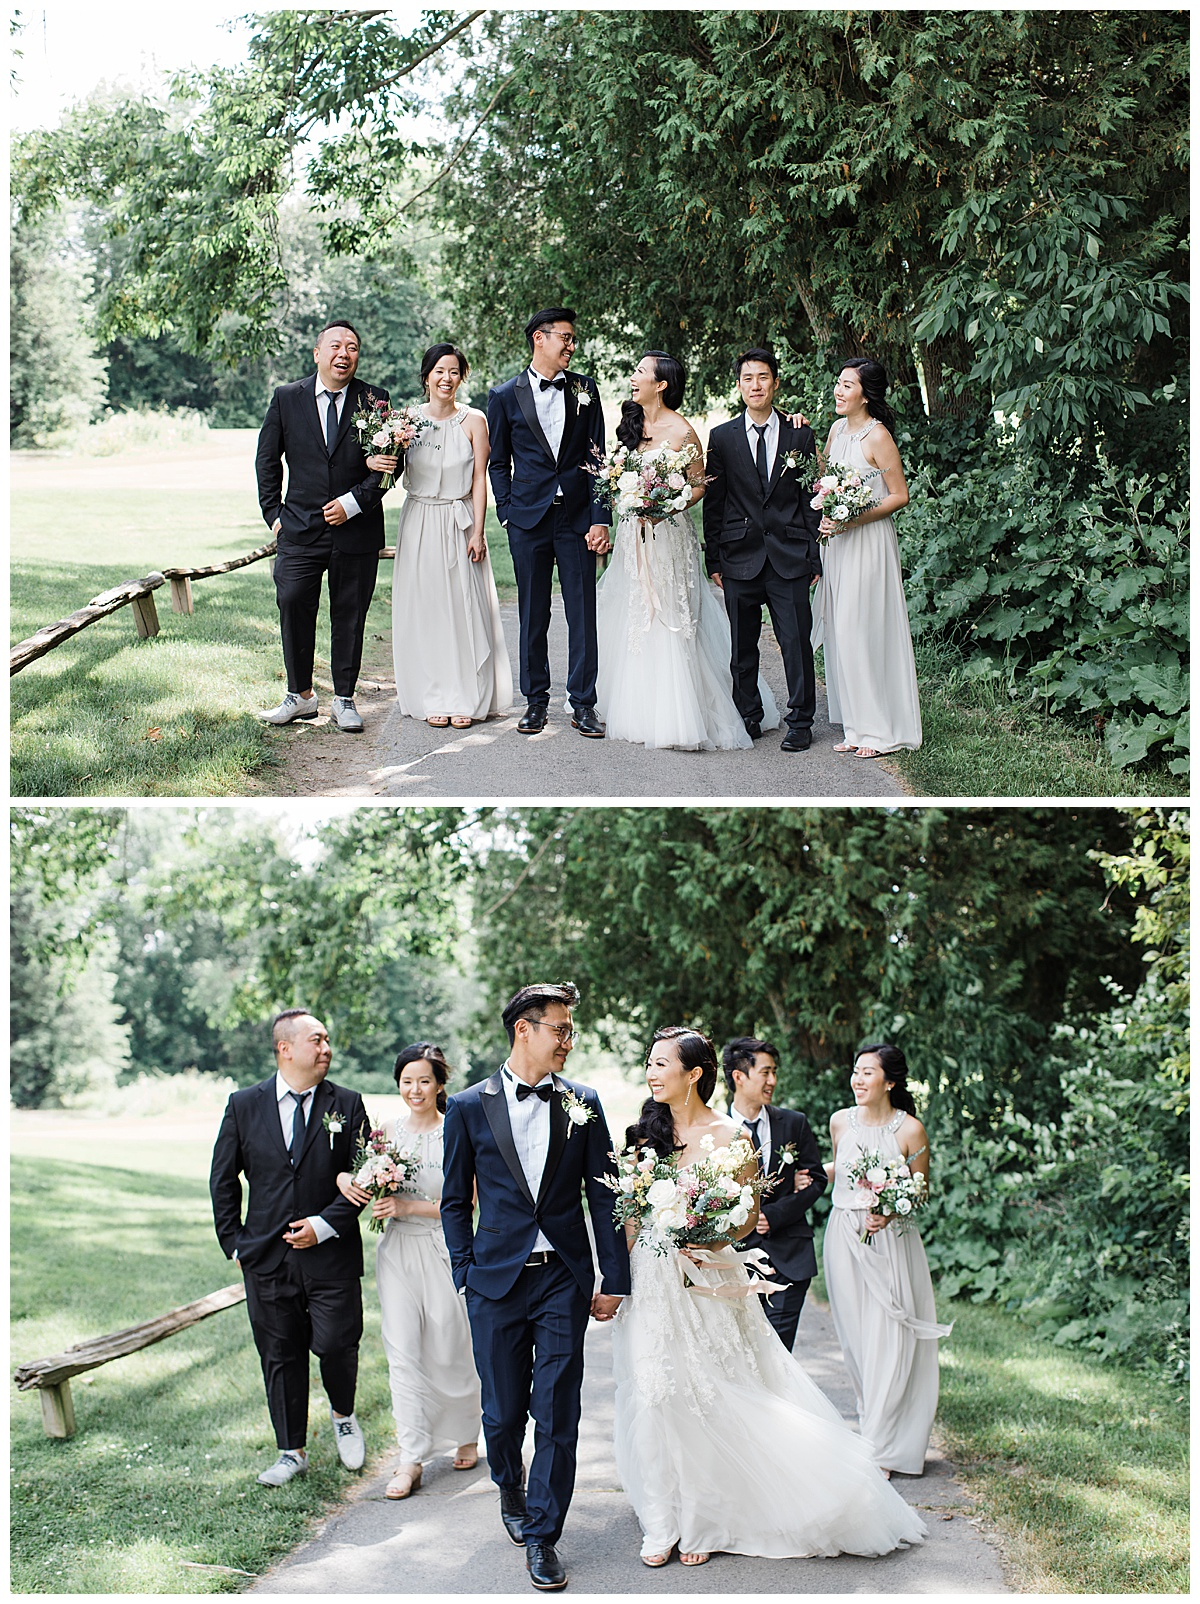 Gorgeous asian bridal party walking with bride and groom at outdoor winery wedding| Adamo Estate Winery Wedding| Toronto photographer|  3photography